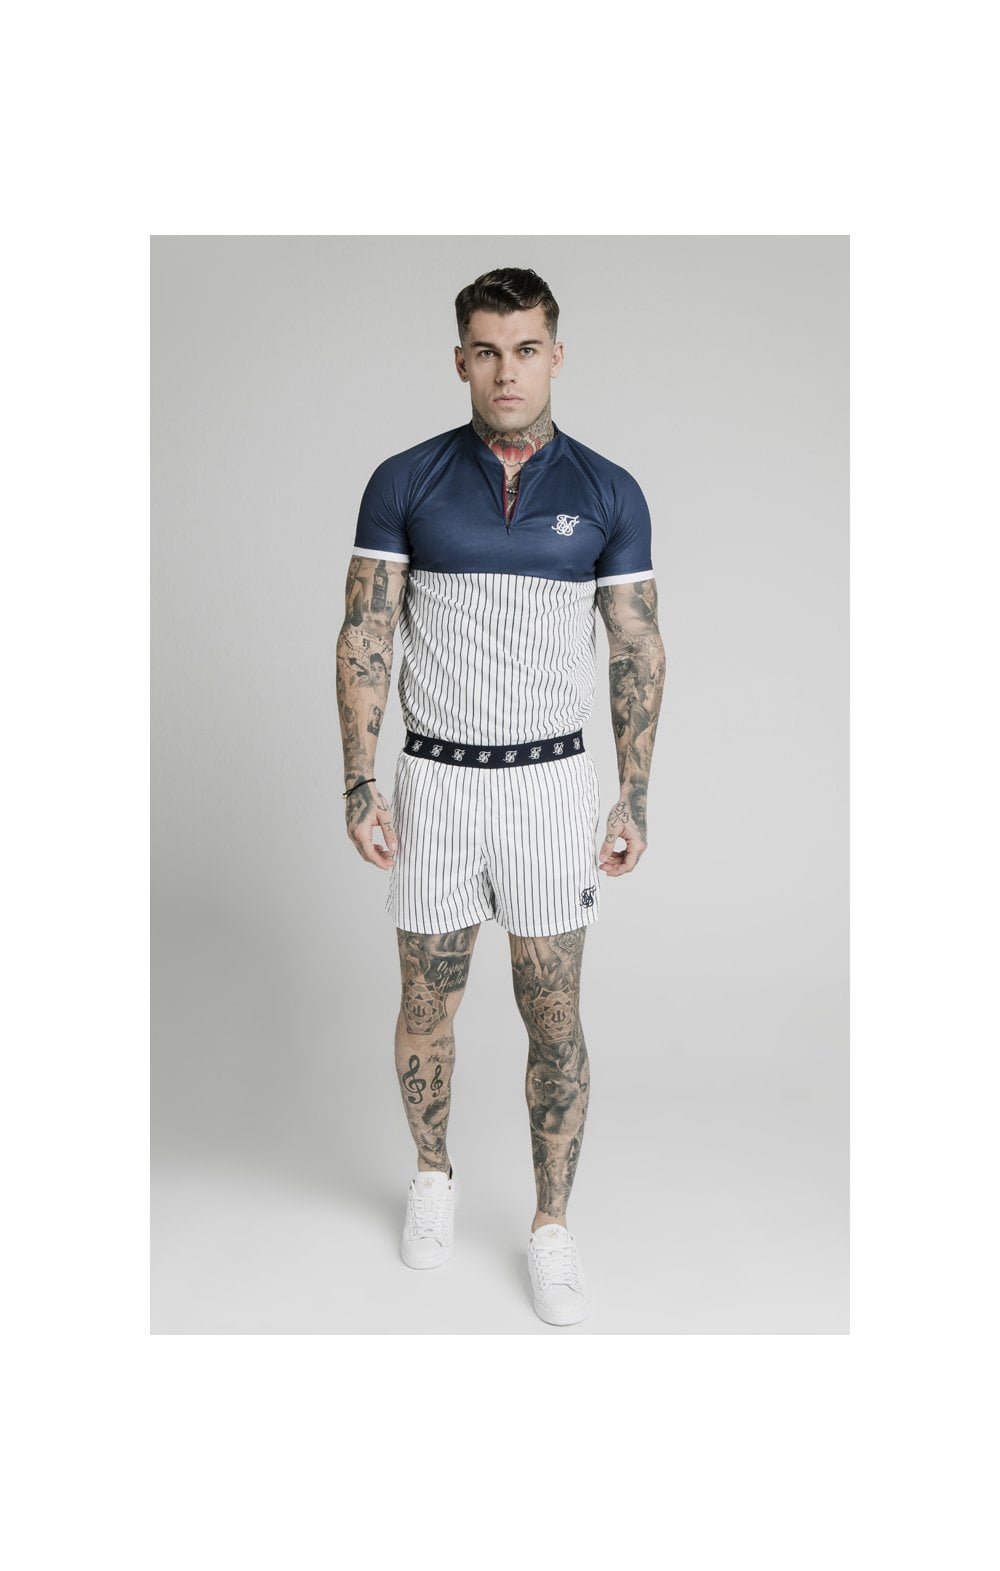 SikSilk Eyelet Elasticated Swim Shorts - White & Navy (3)